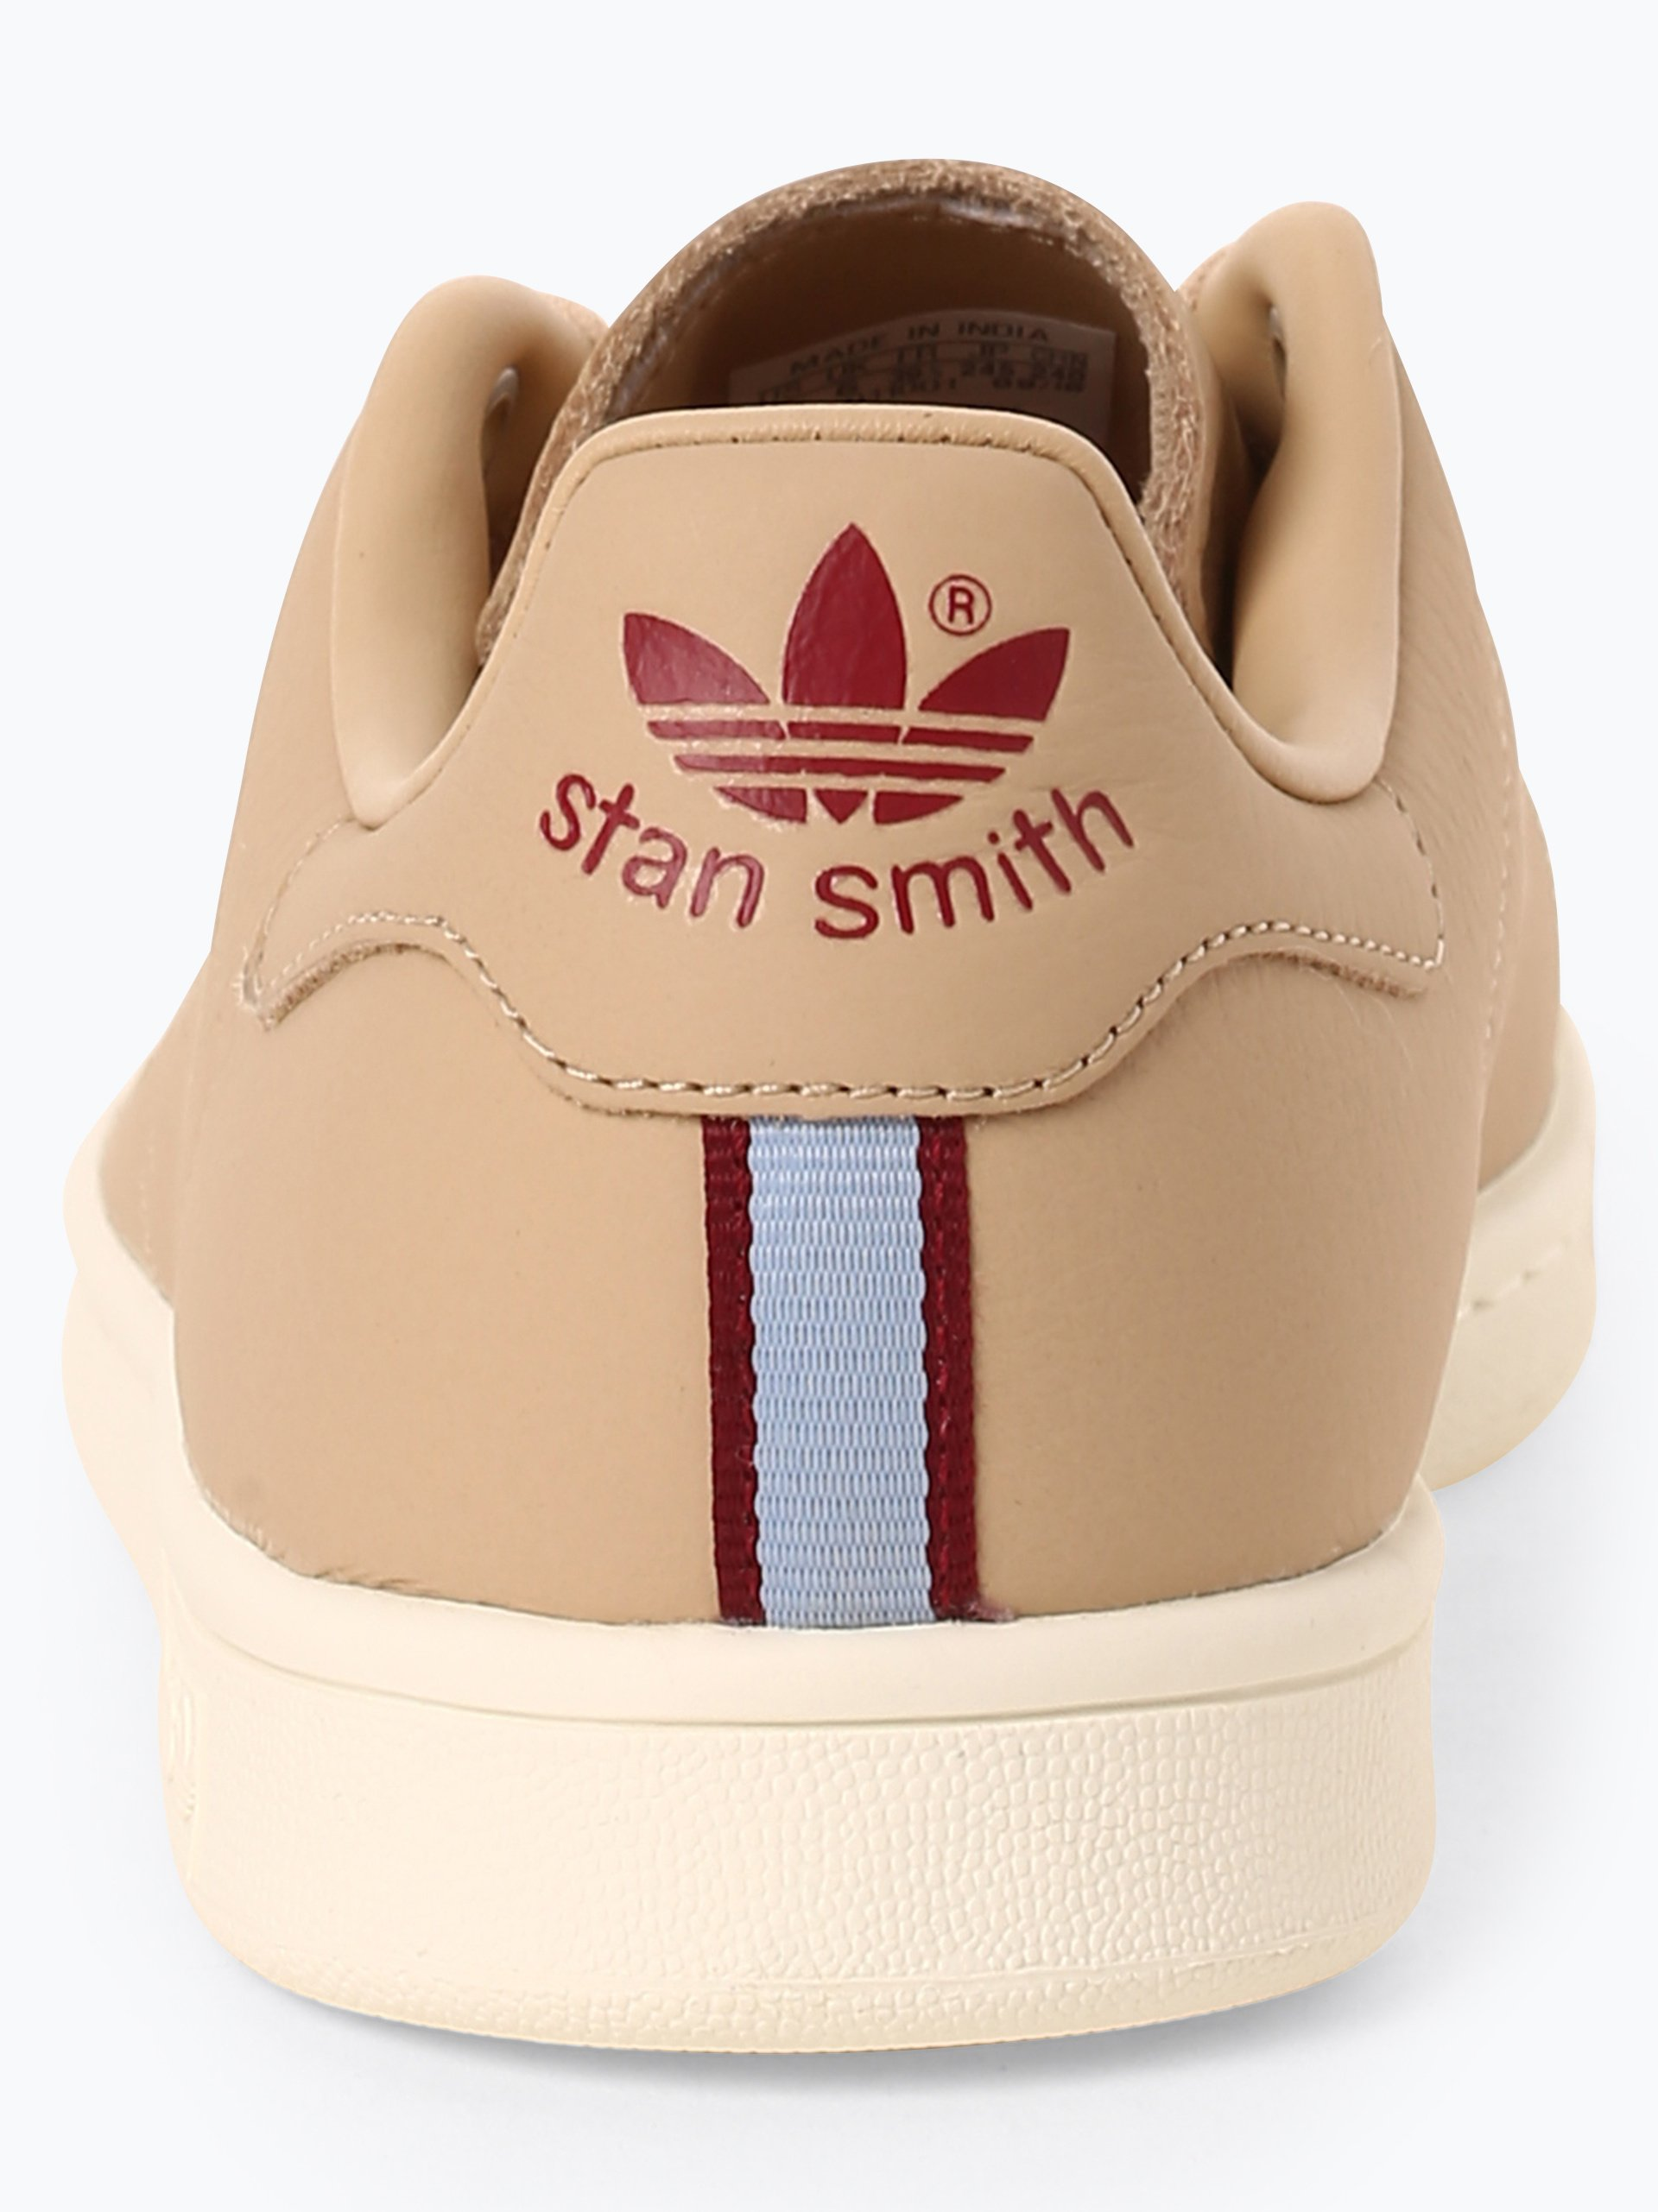 adidas Originals Damen Sneaker aus Leder - Stan Smith